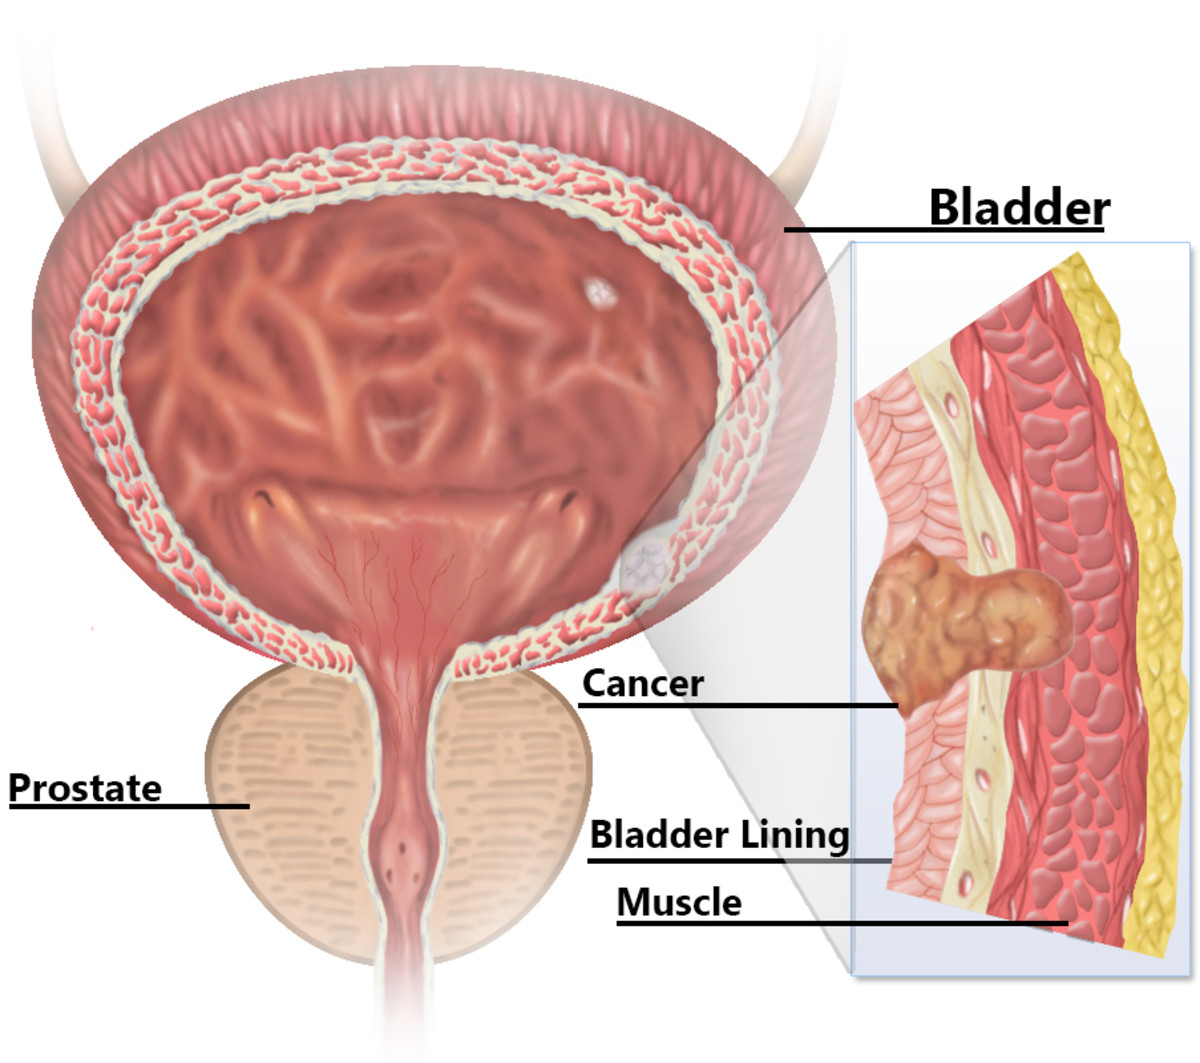 Bladder Cancer in Men, Dark Black Spots, and BCG Treatment